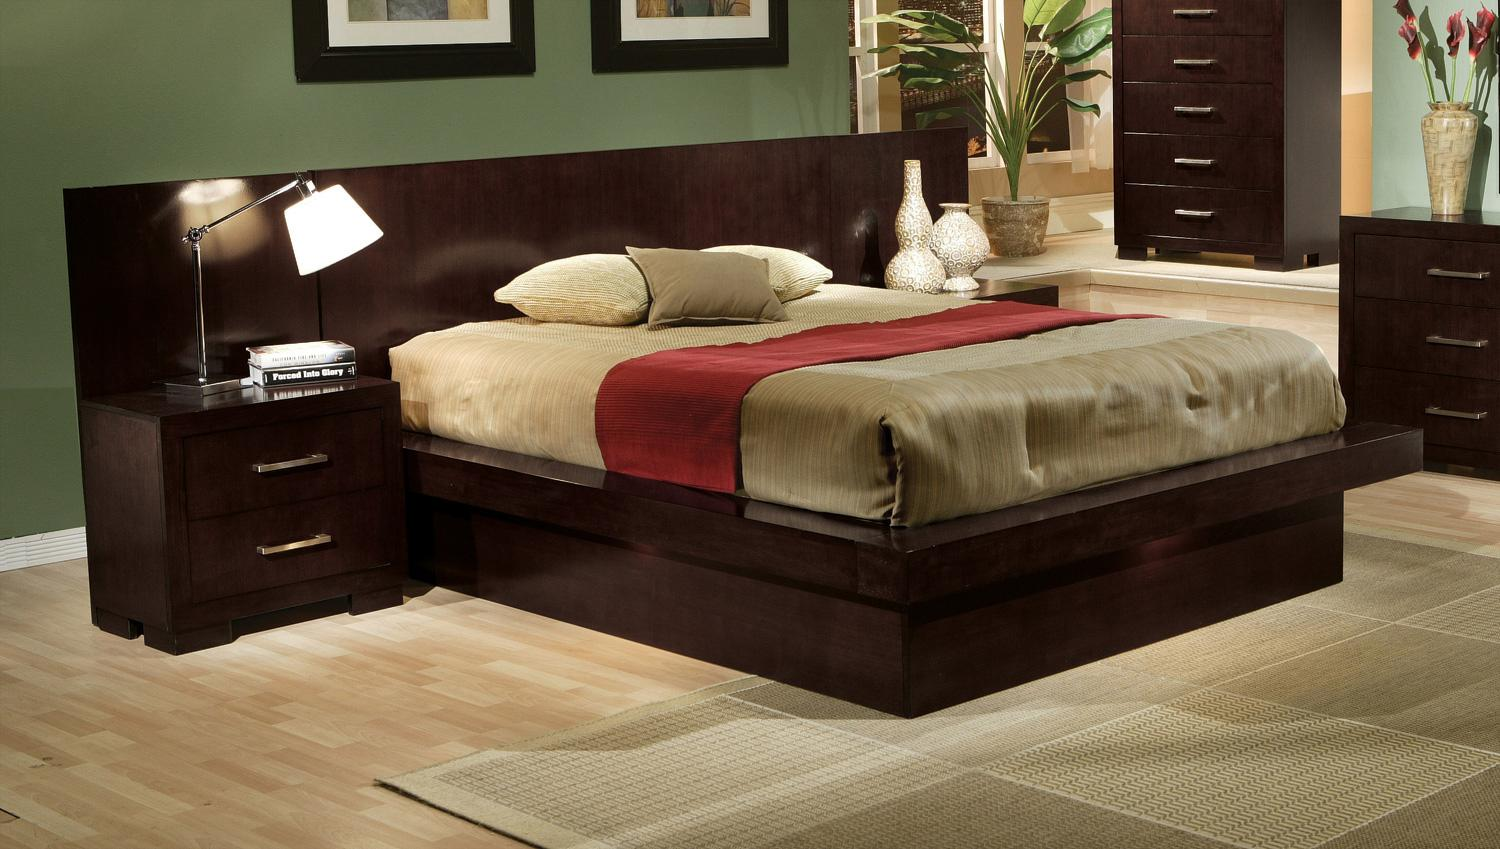 Modern 4 PC platform bed queen bedroom Fairfax VA ...